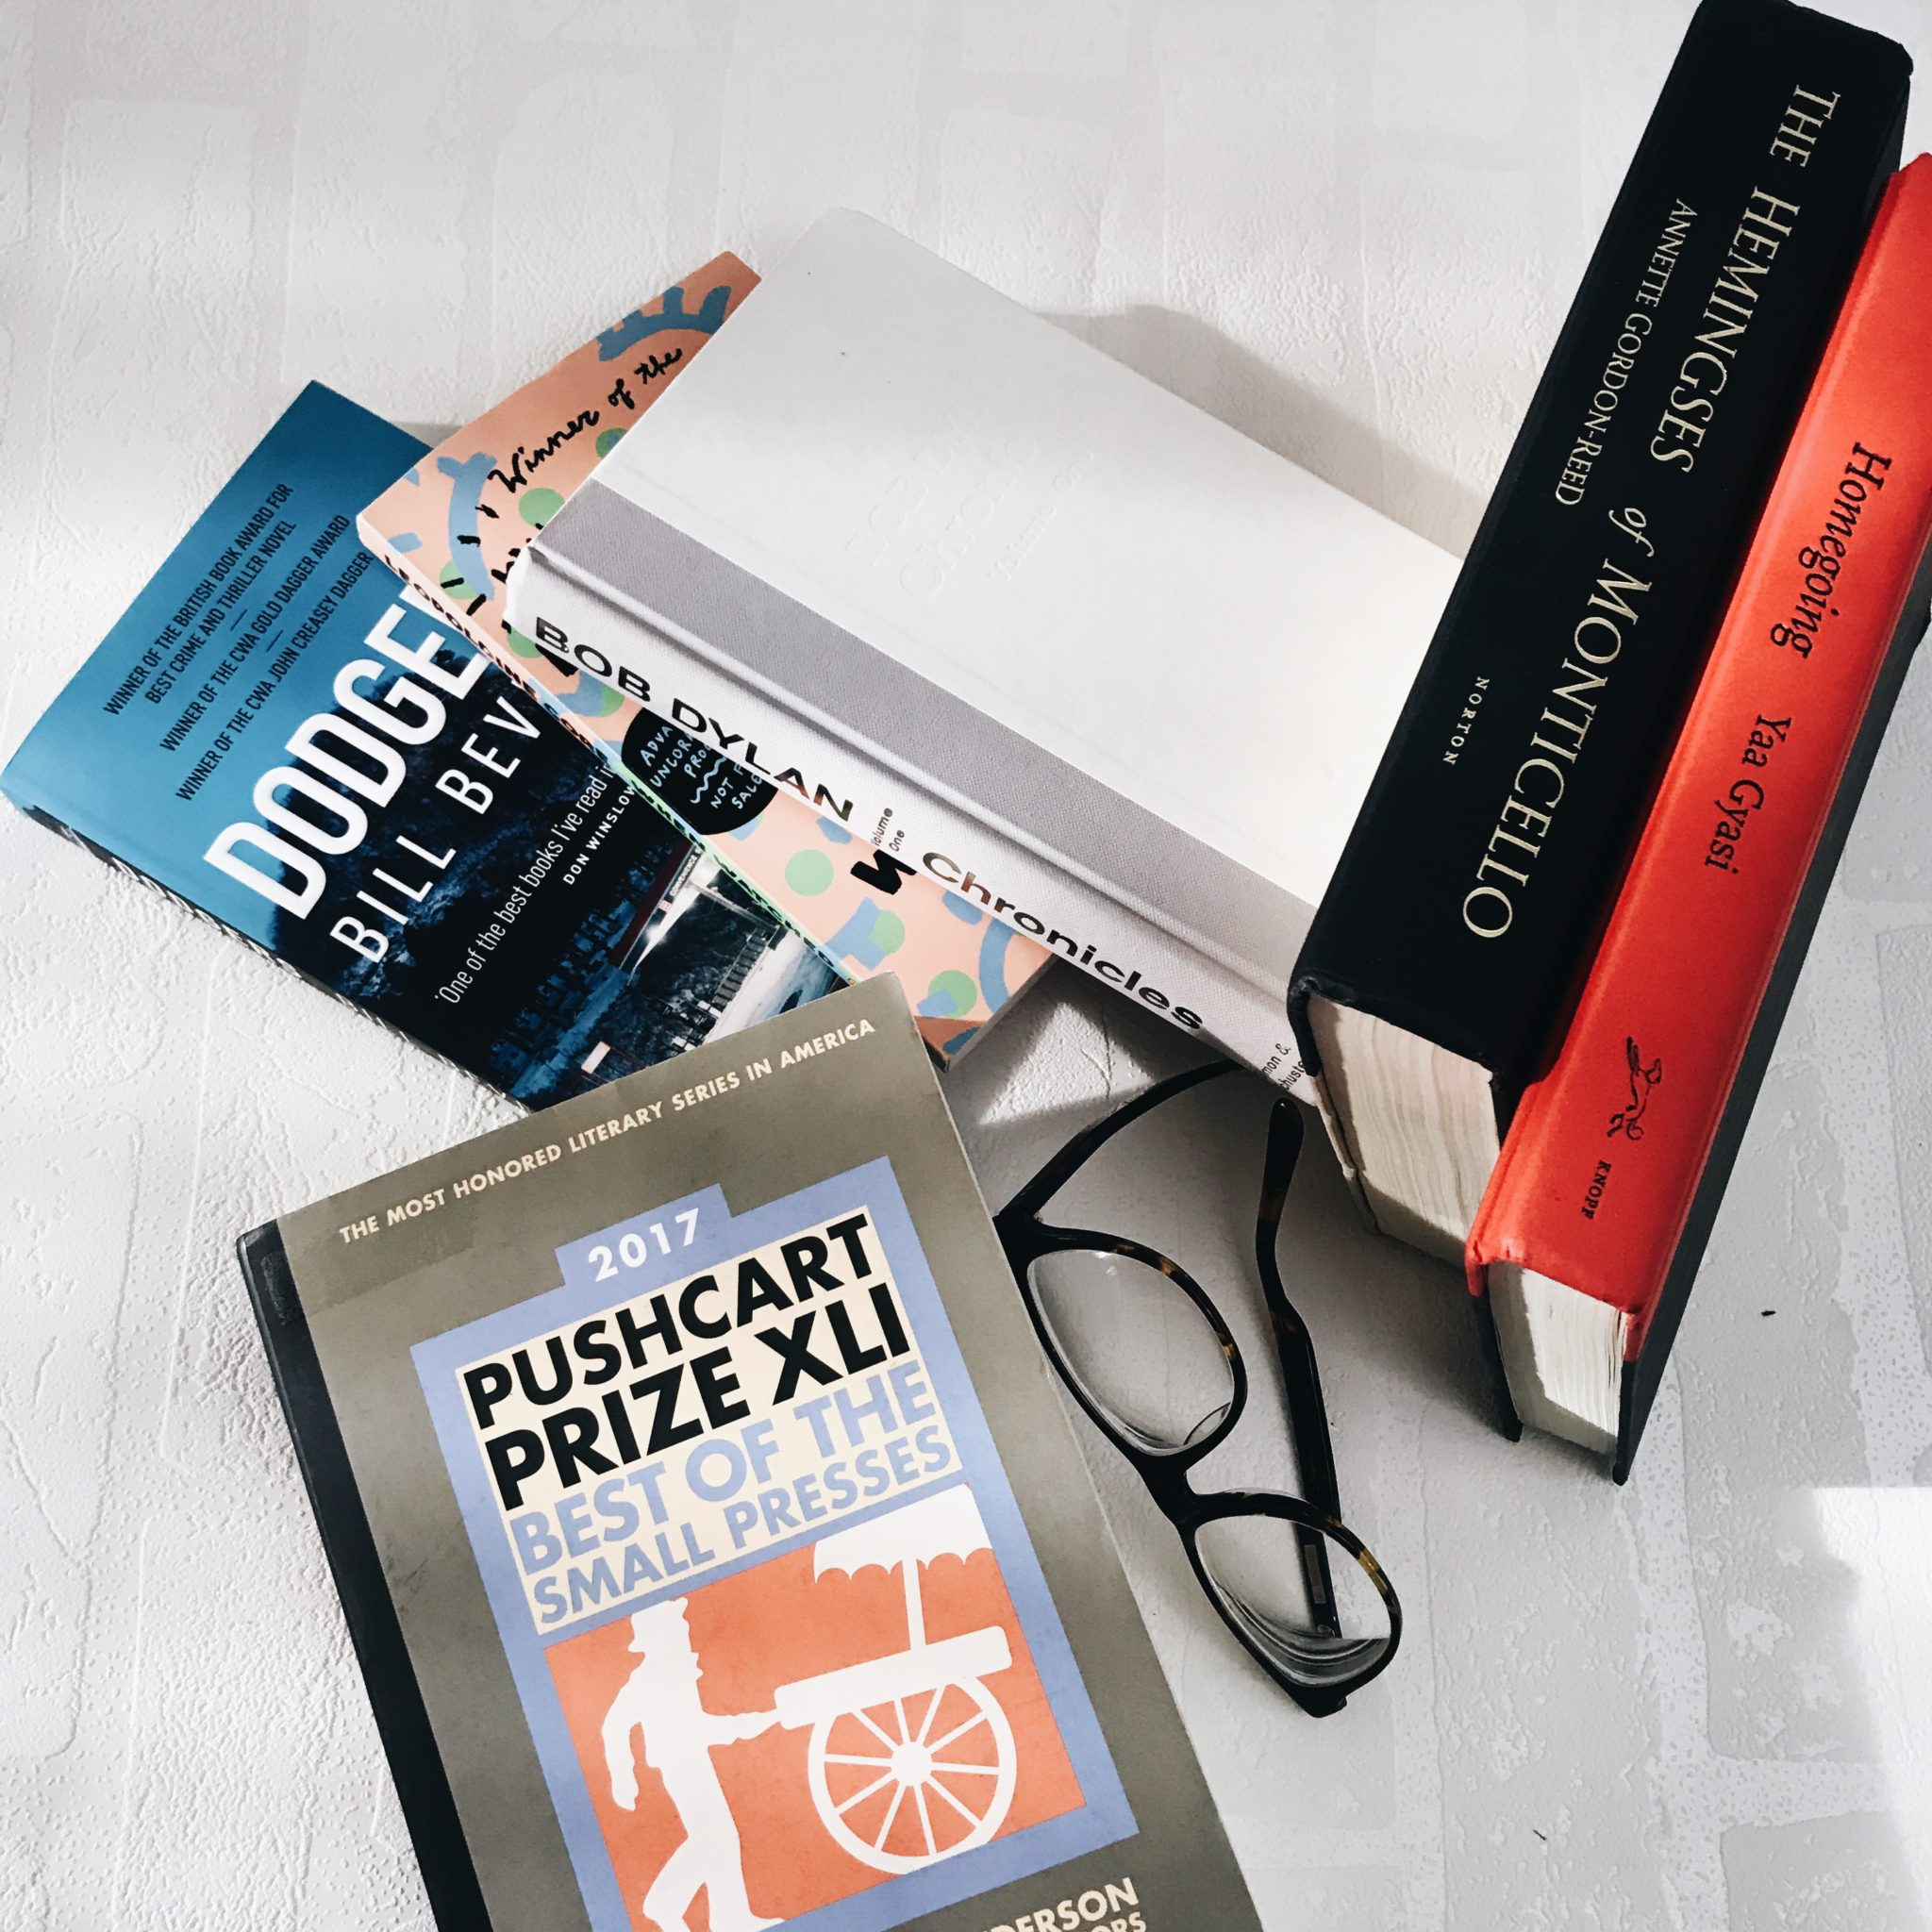 Some New books pushcart prize penn Hemingway prize awards best selling book